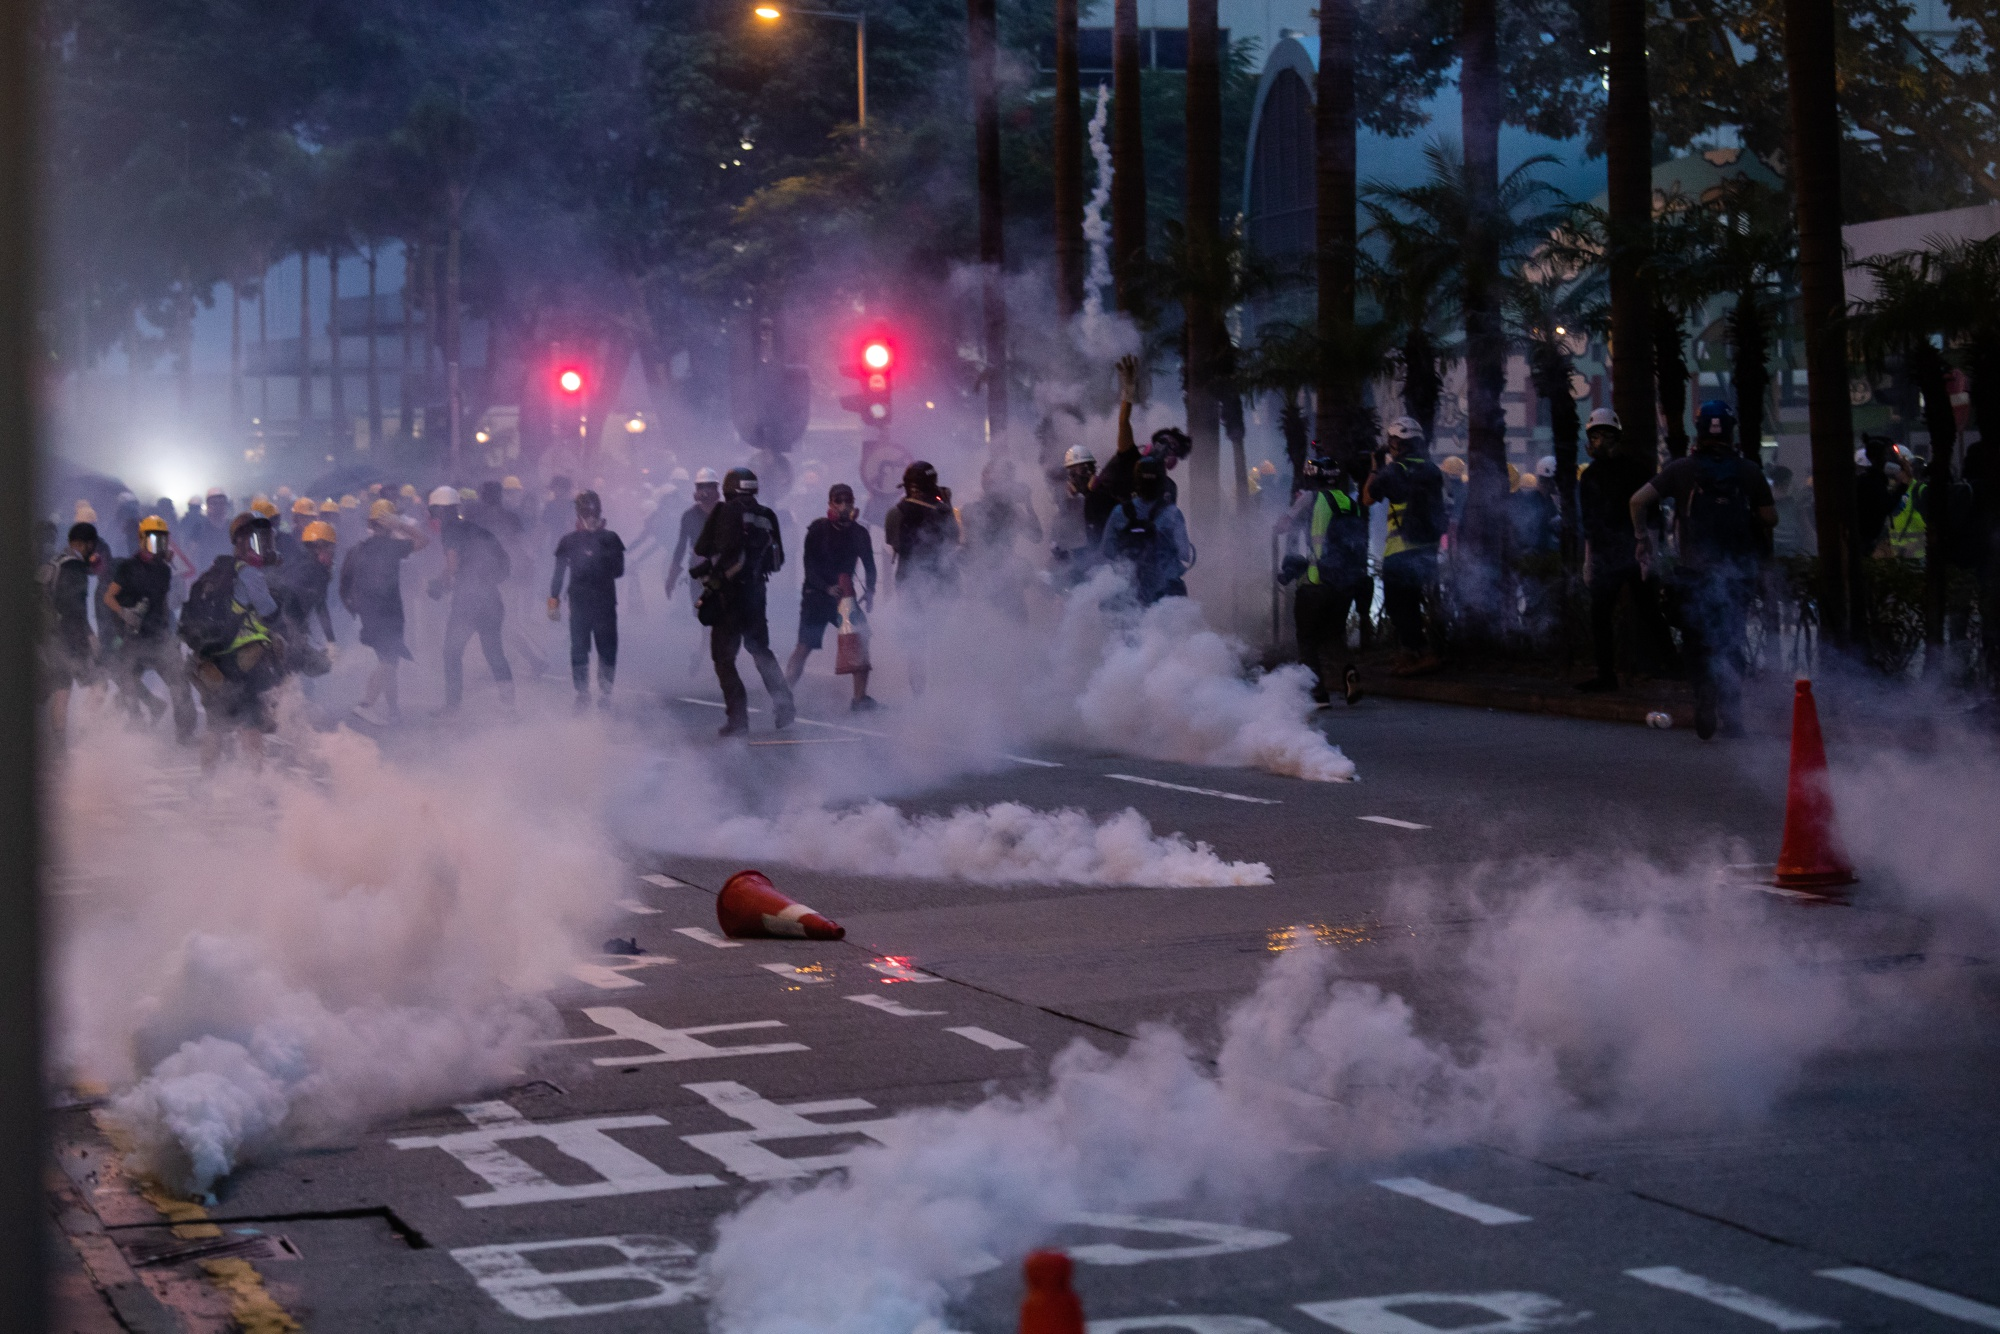 Murder Suspect Who Sparked Hong Kong Unrest May Soon Be Free